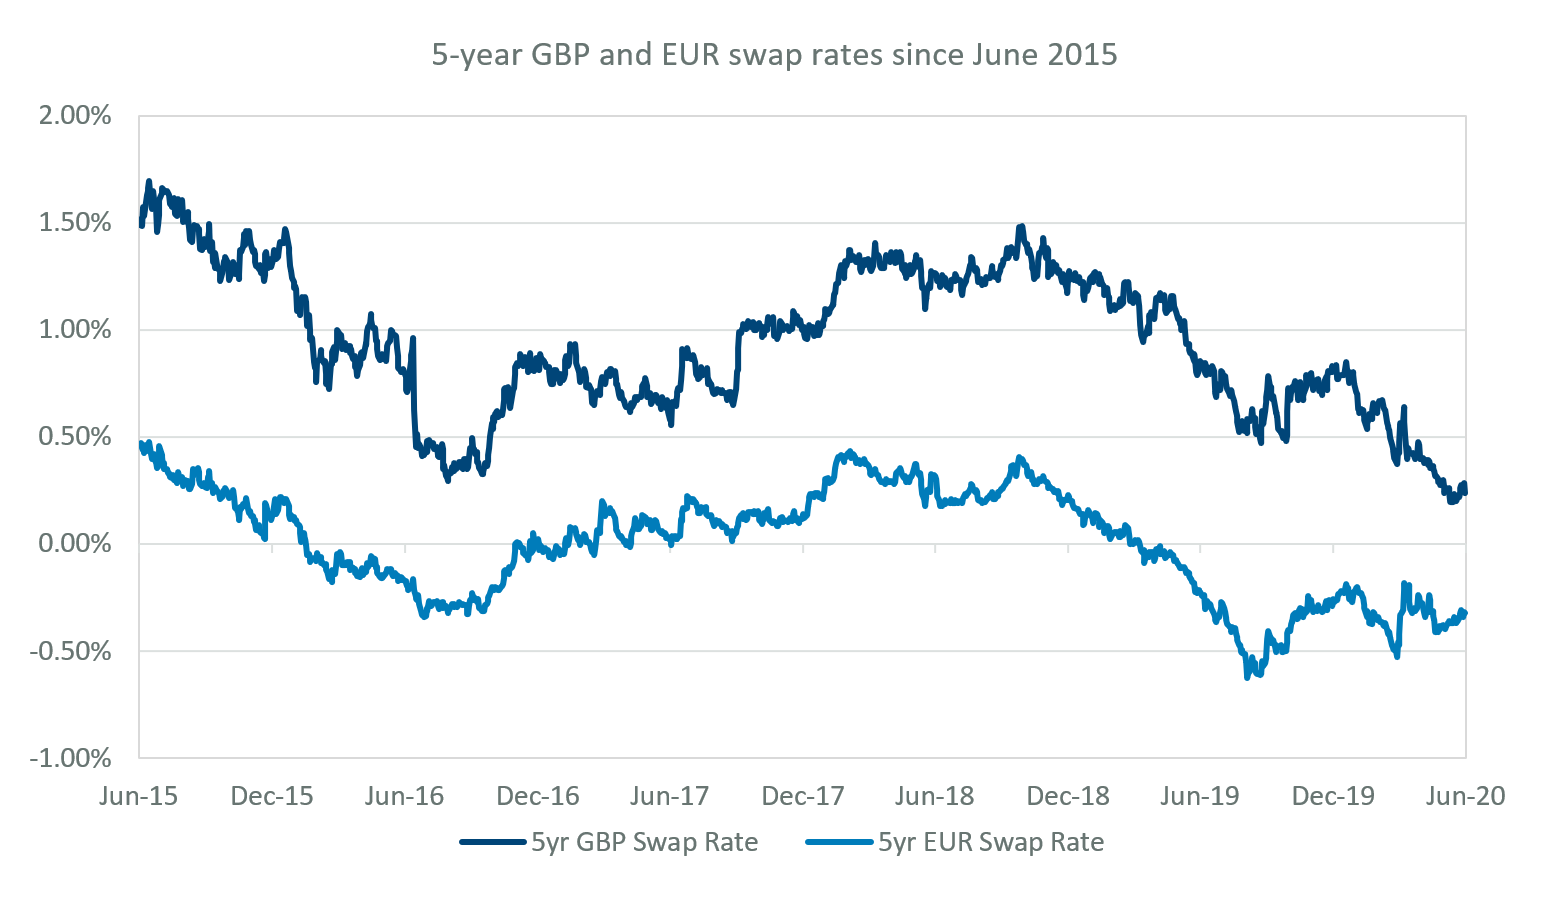 5-year GBP and EUR swap rates since June 2015